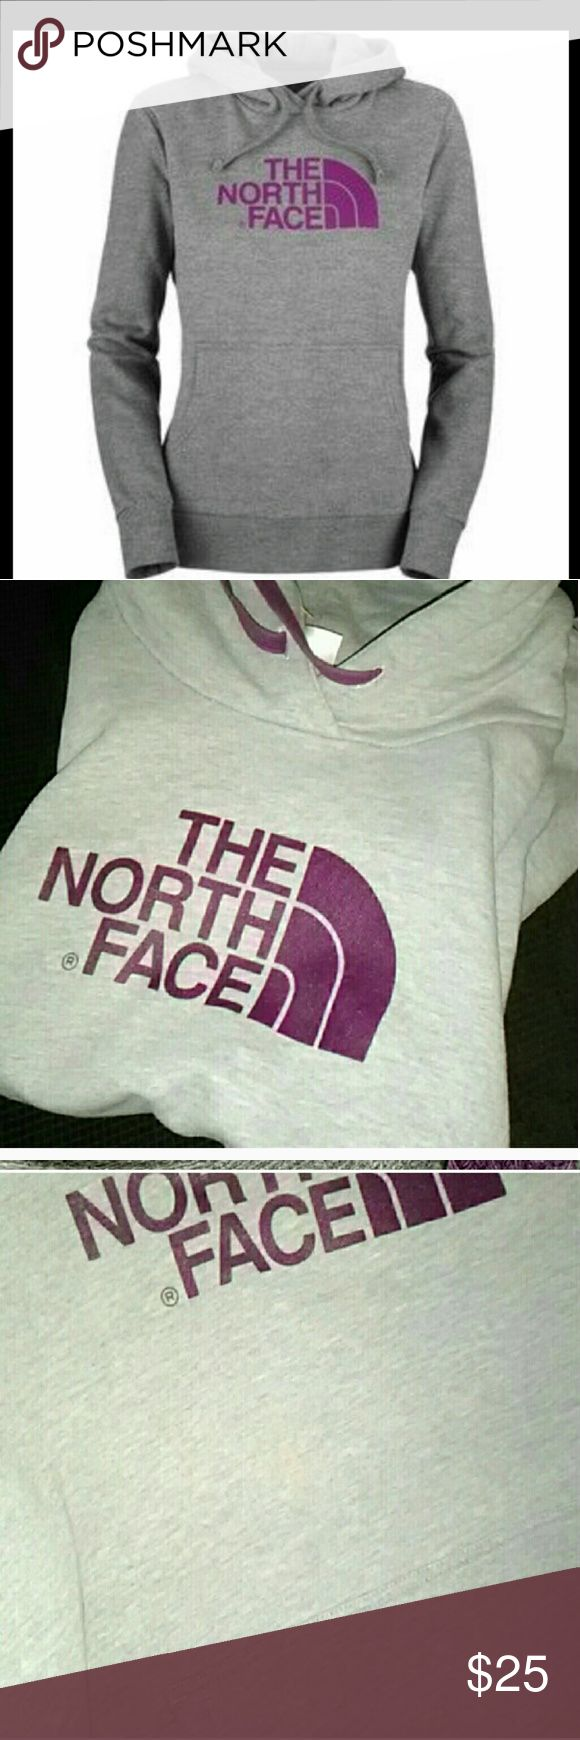 The North Face Women's Large Pullover Sweatshirt Size large Long sleeve Purple and gray A light almost unnoticeable at all spot on it No other wear  Ships quick Bundle and save The North Face Tops Sweatshirts & Hoodies